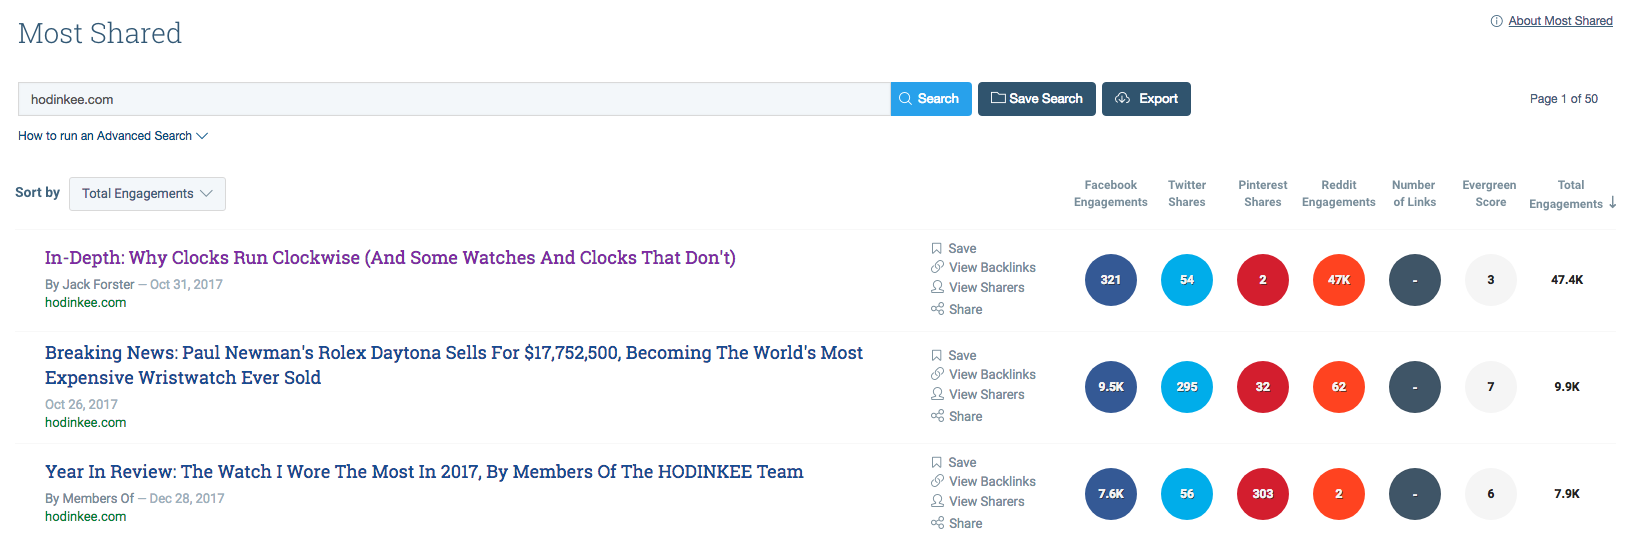 buzzsumo hodinkee search